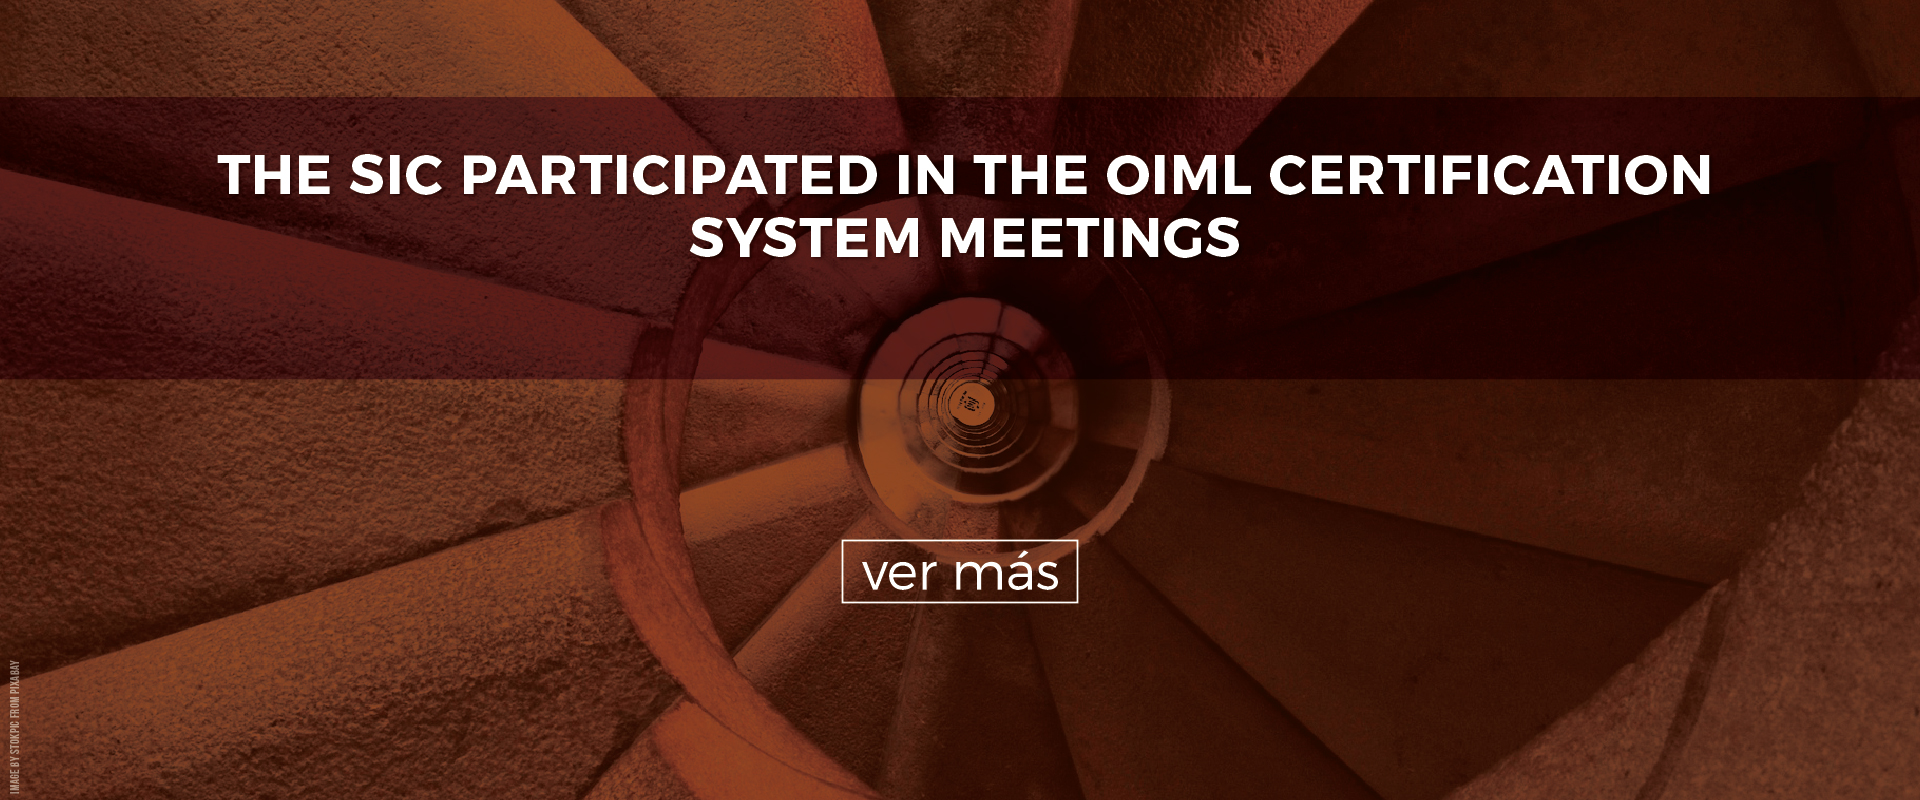 The SIC participated in the OIML Certification System Meetings